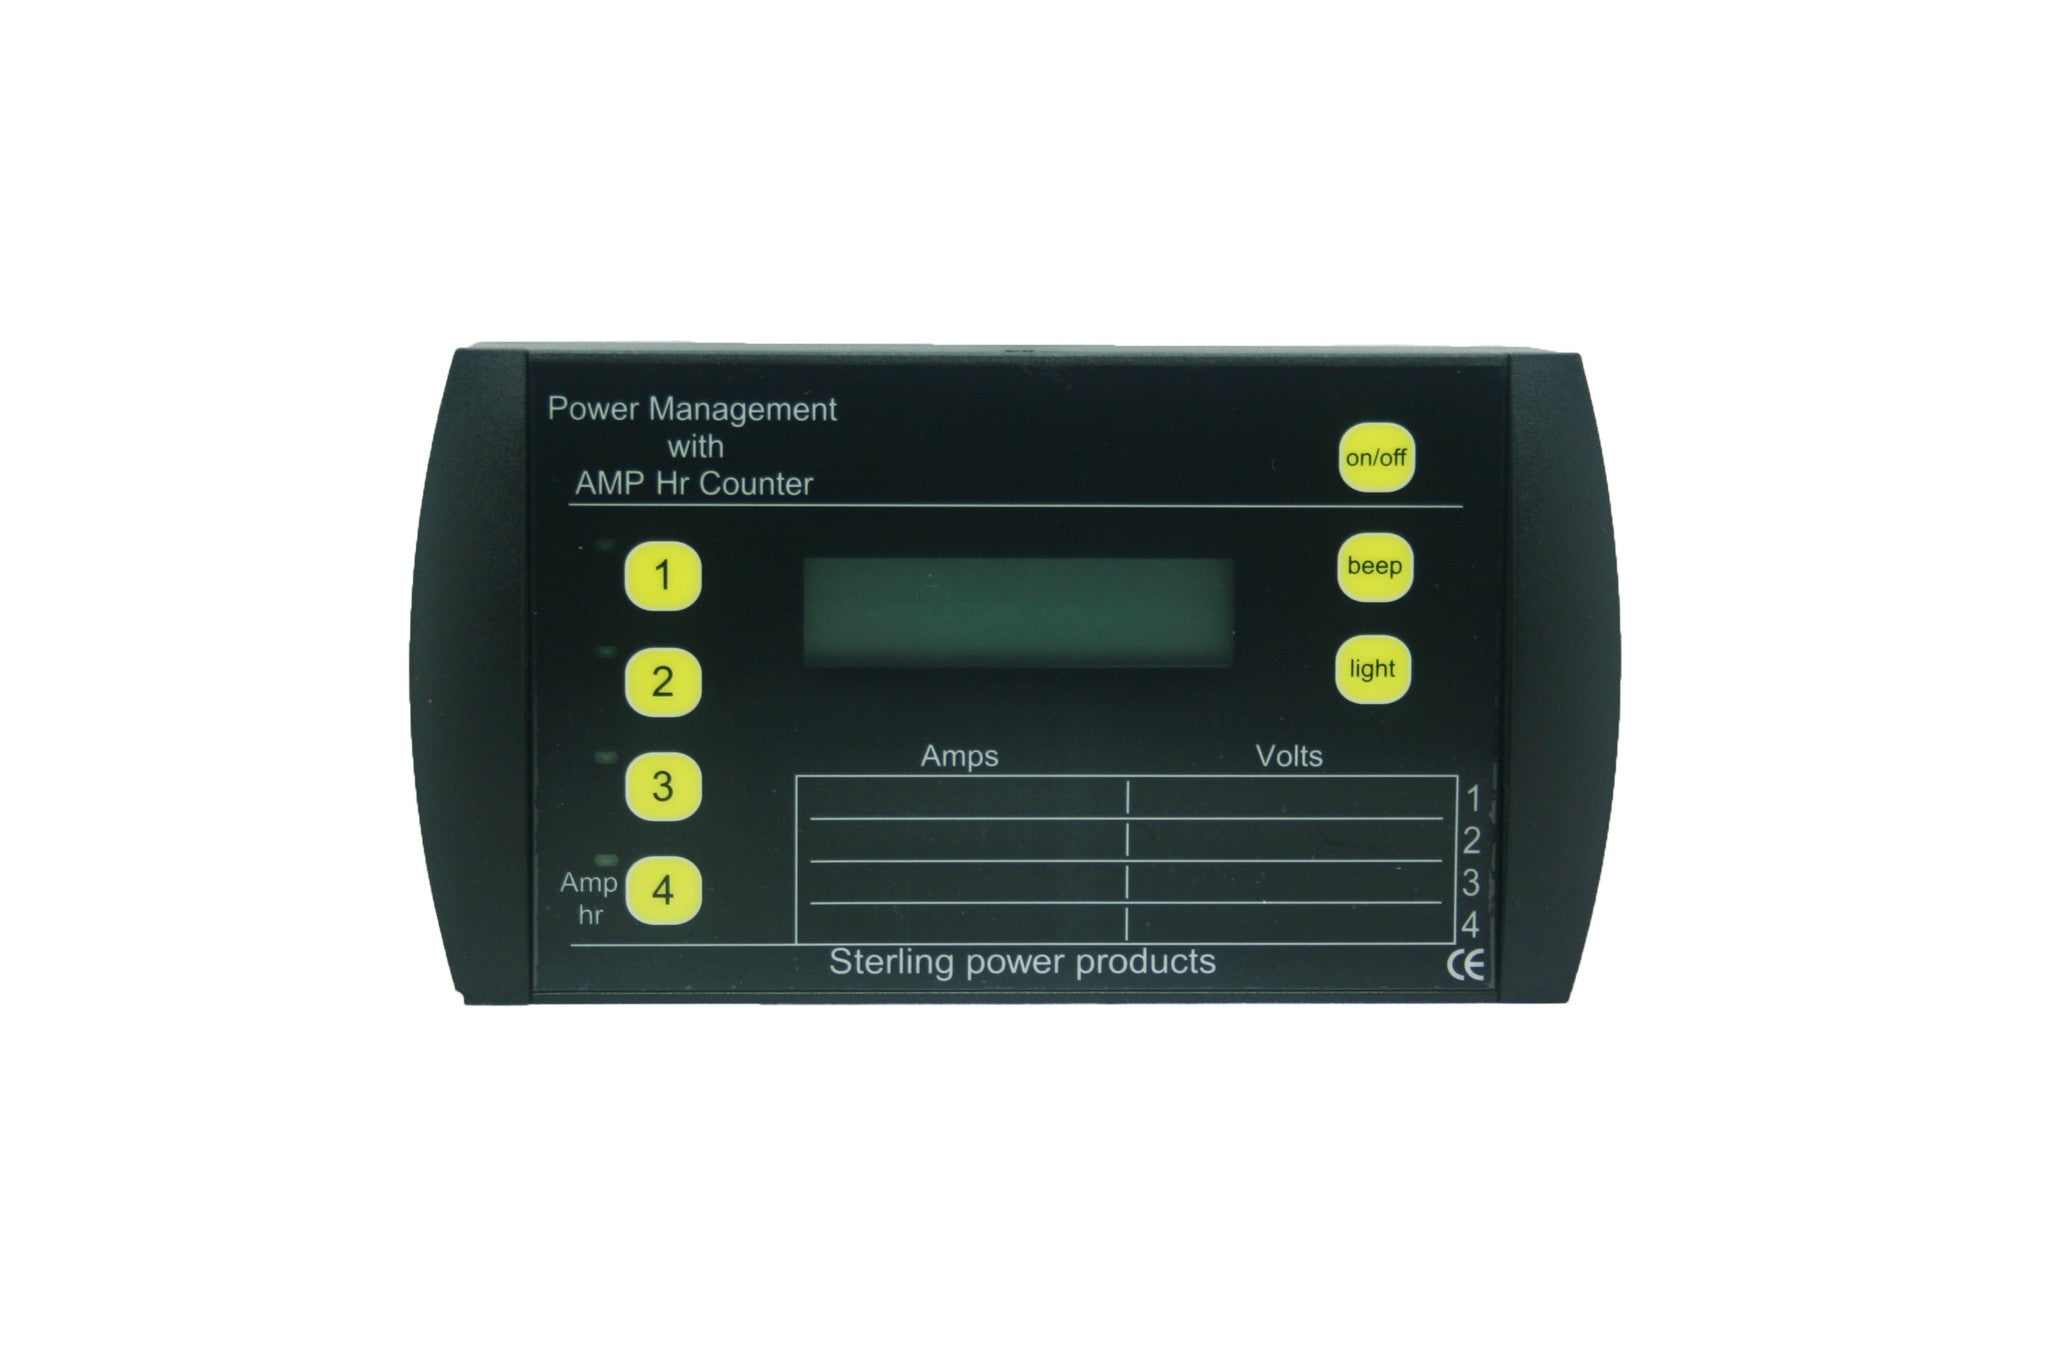 Latching Relay Remote Control Sterling Power Products The Wireless Equipment Has Two Modes Latched Management Panel